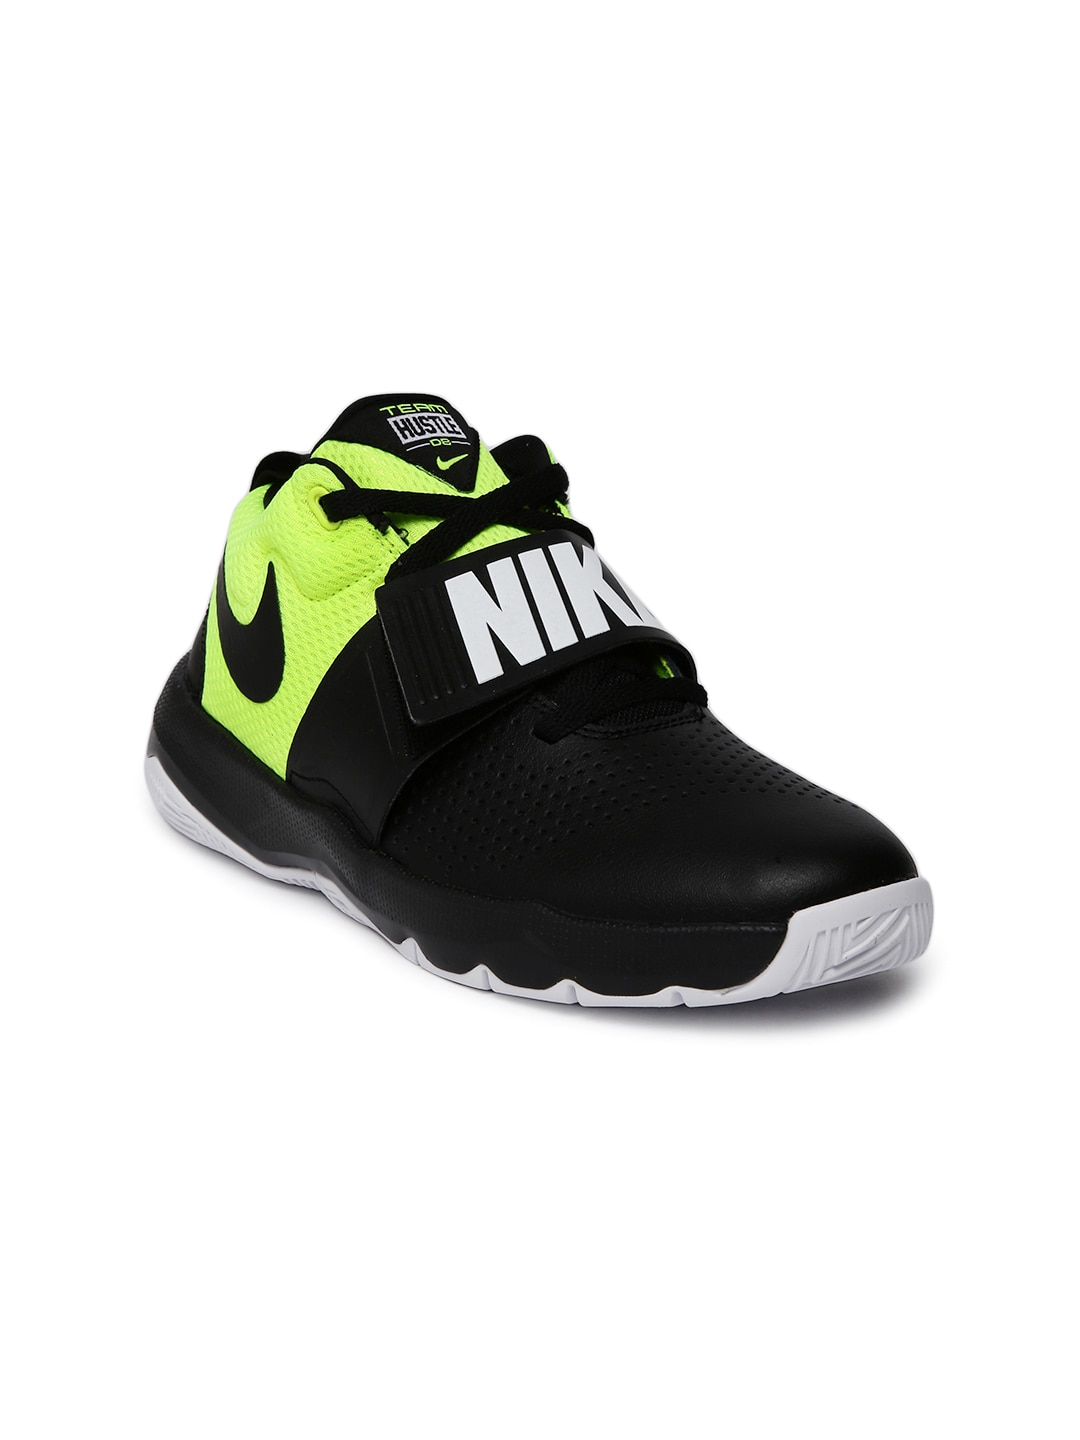 965fe6125a9a Kids Footwear - Buy Footwear For Kids Online in India